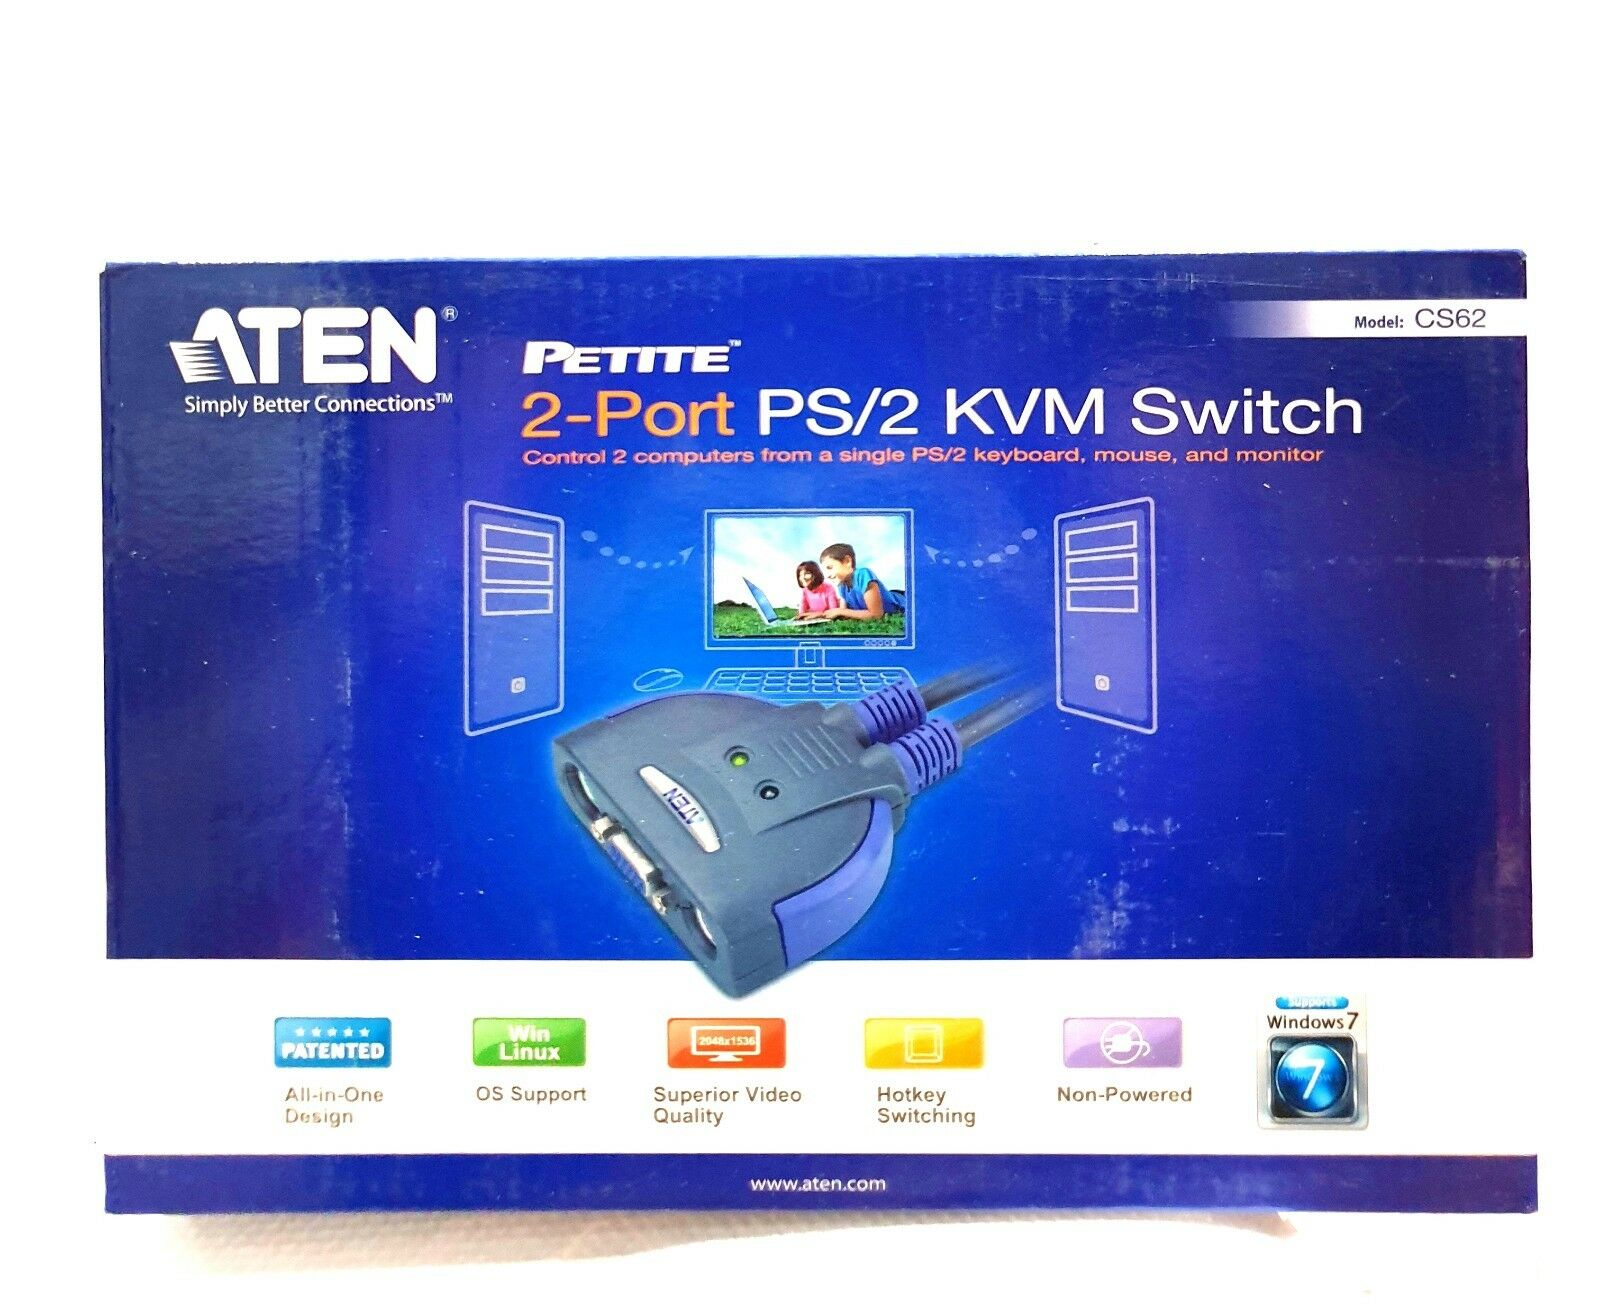 ATEN CS62 2-Port PS/2 KVM Switch - Control 2 computer from single PS/2 Keyboard